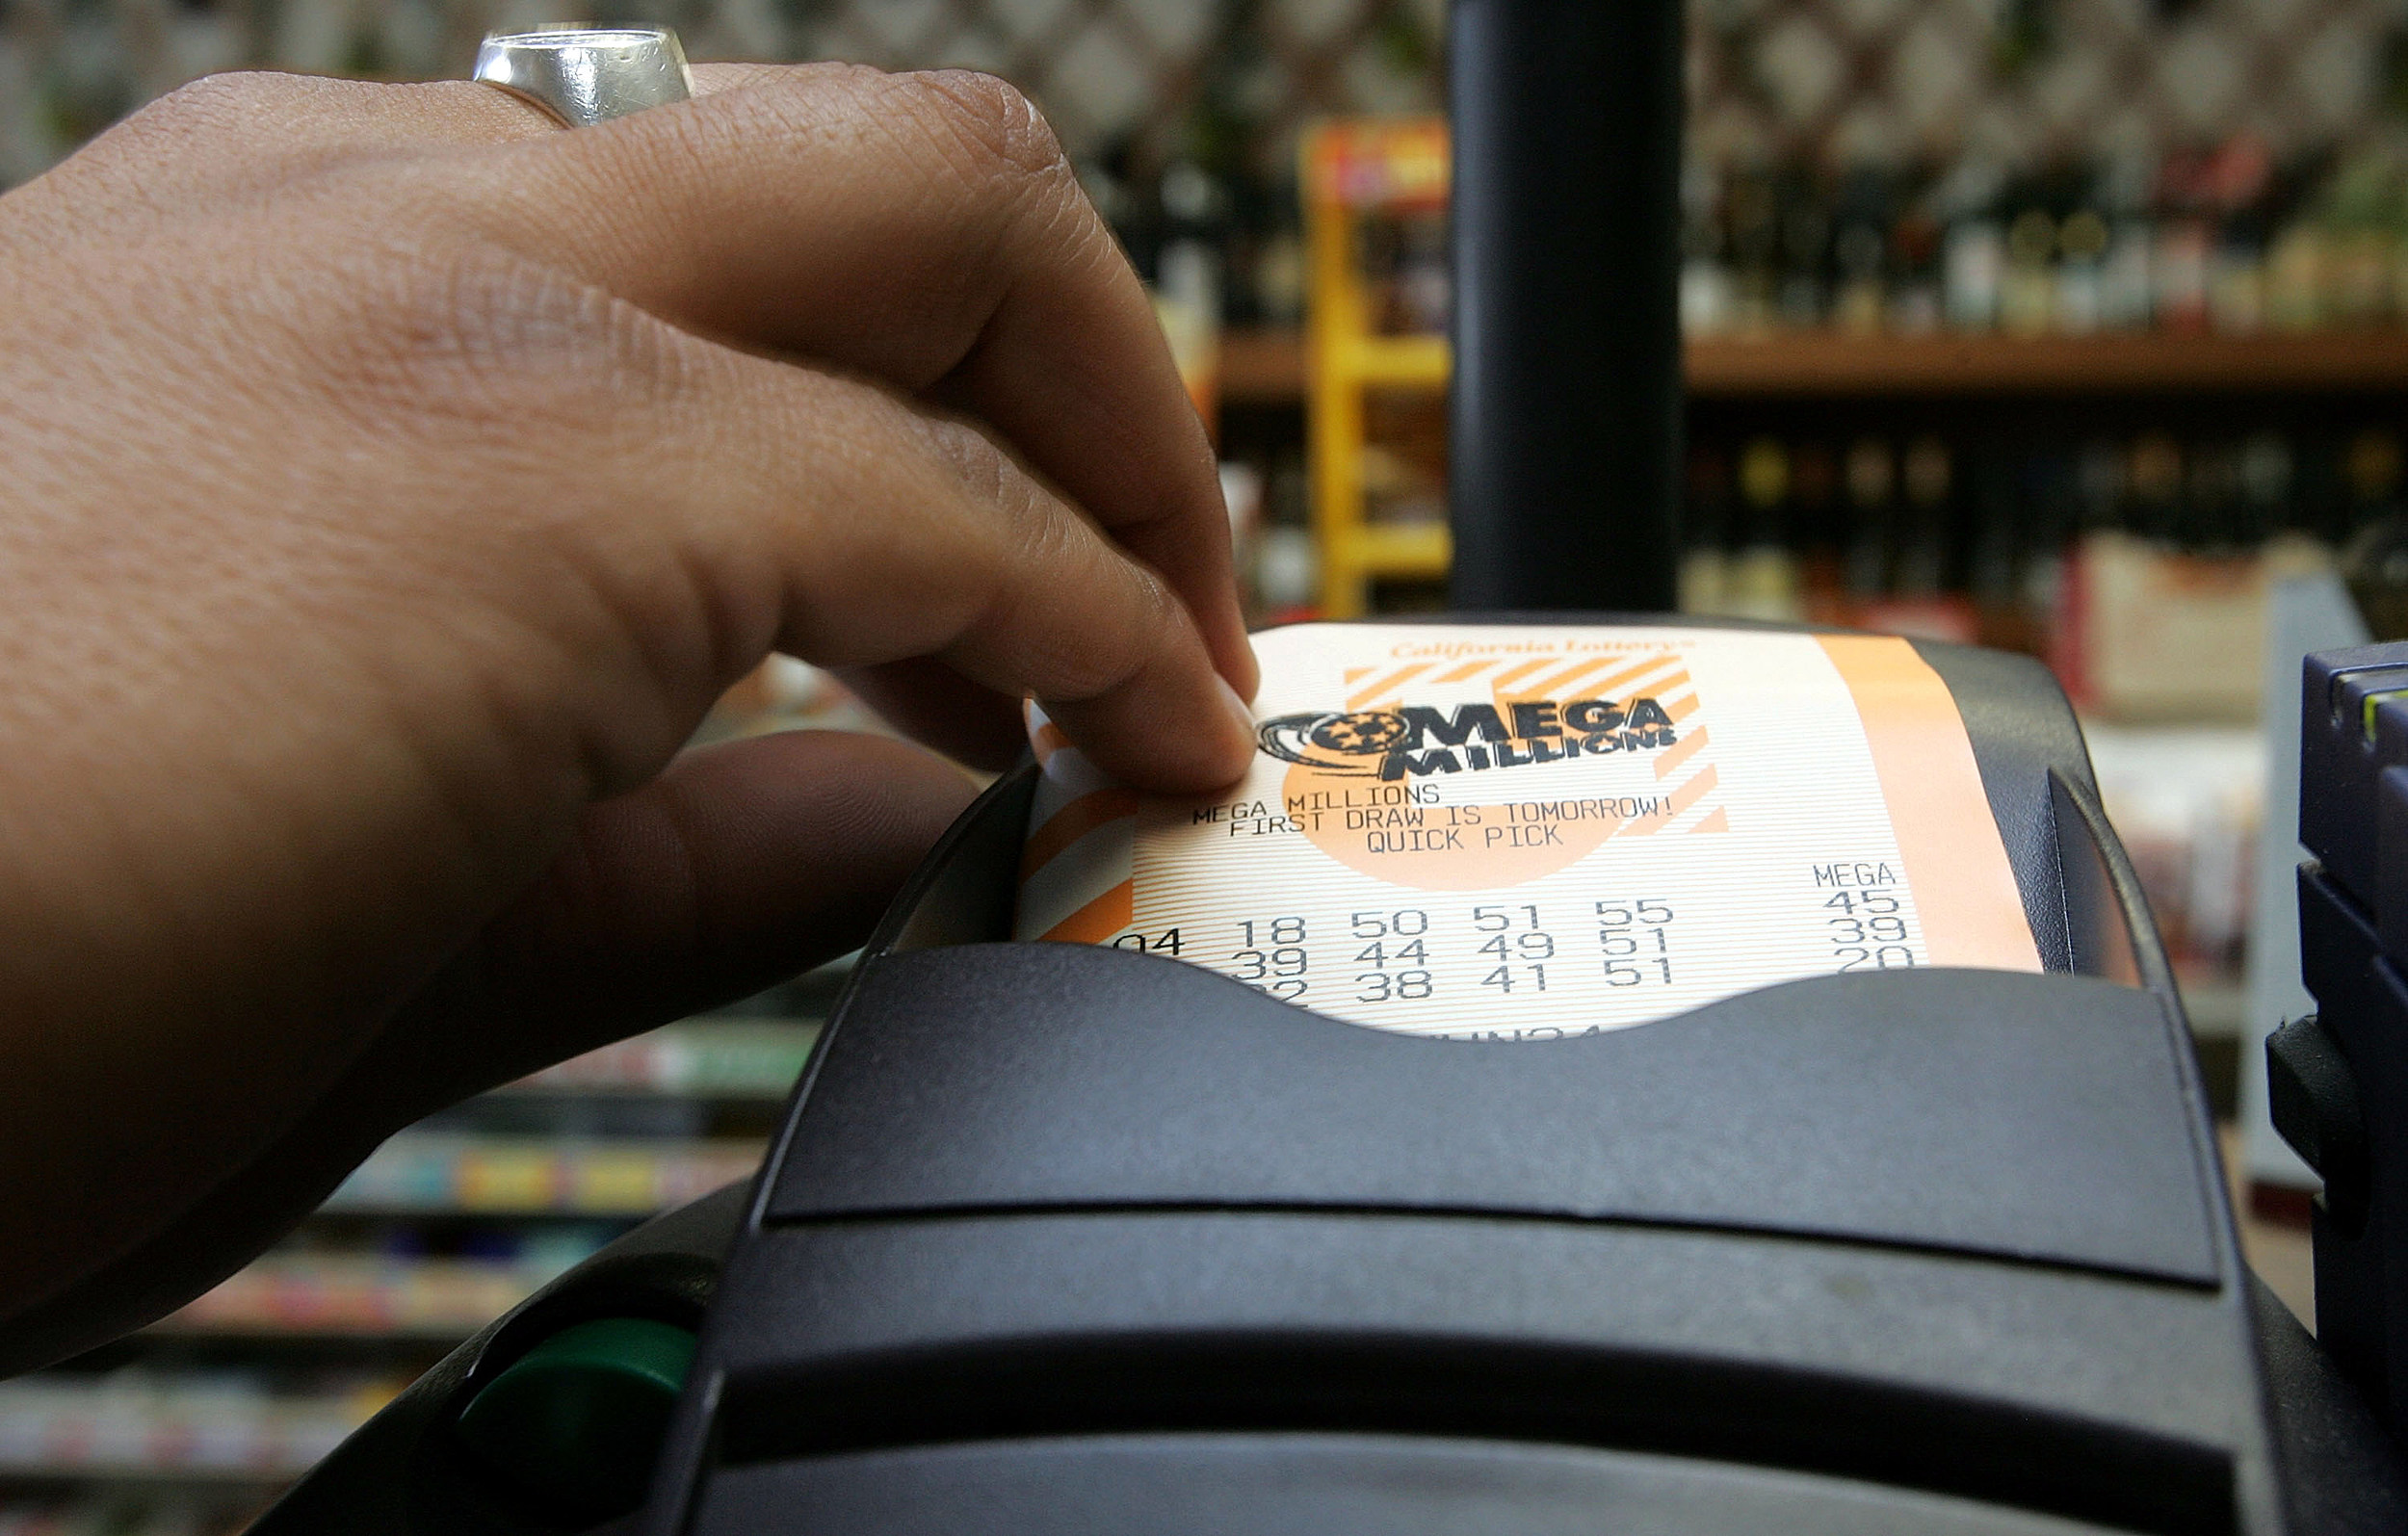 California Joins Mega Millions Lottery